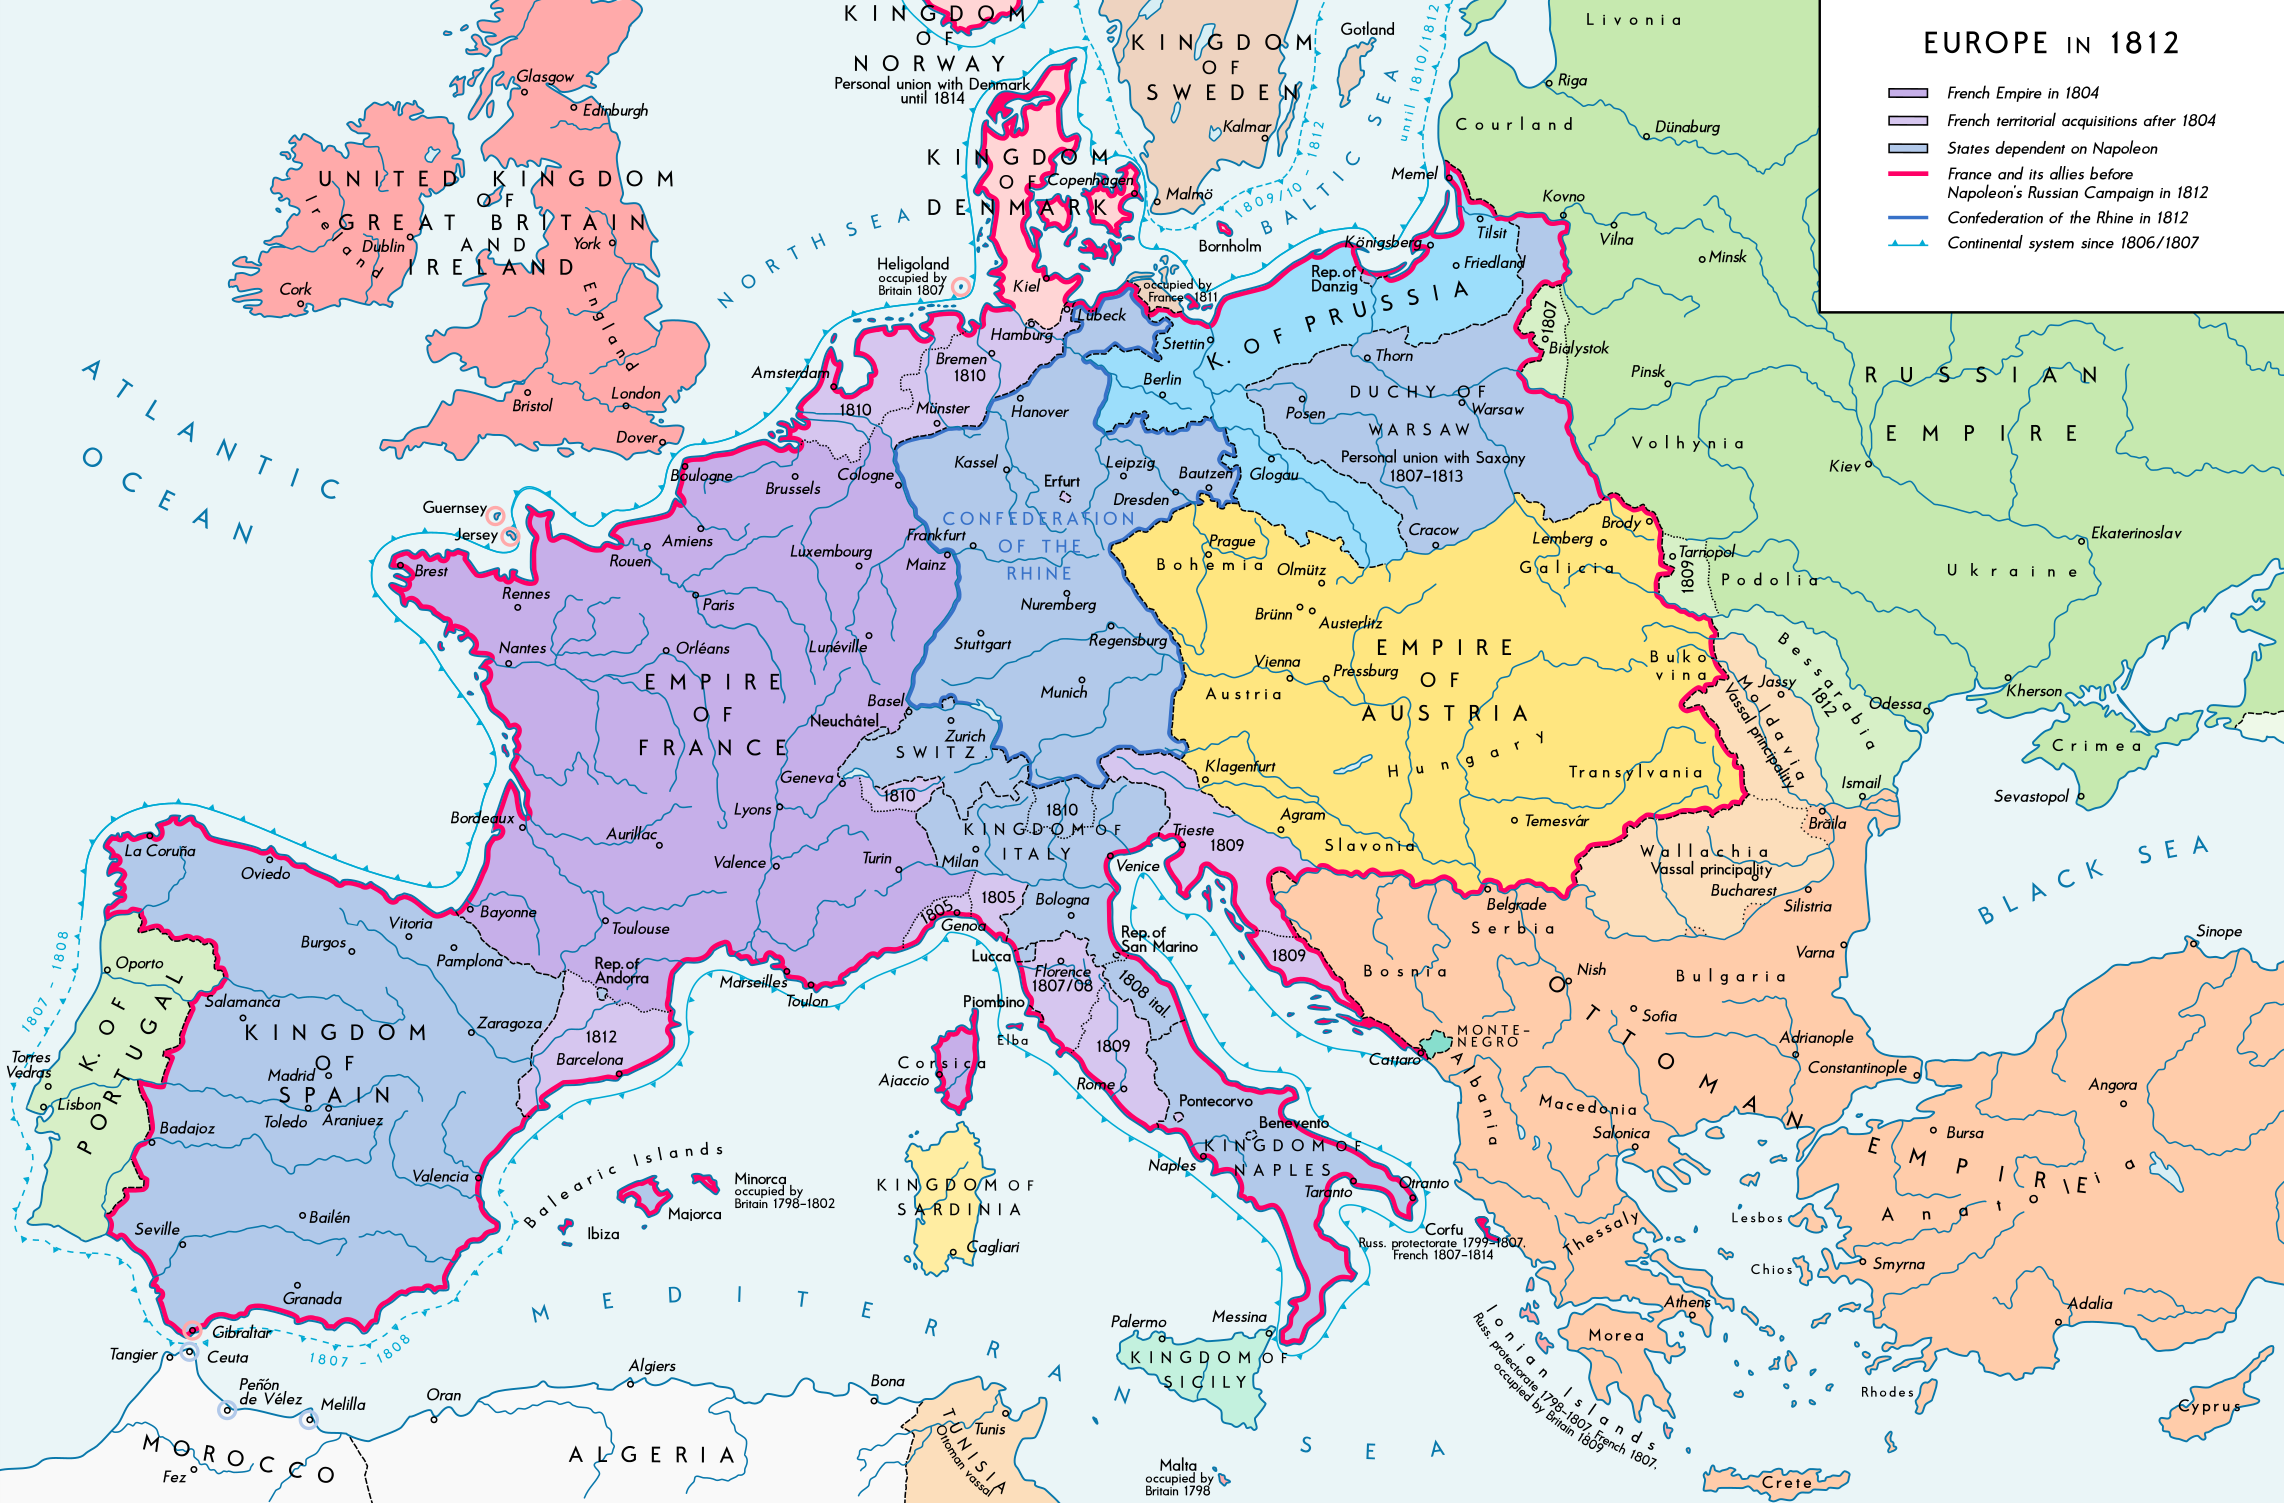 File:Europe 1812 map en.png - Wikimedia Commons